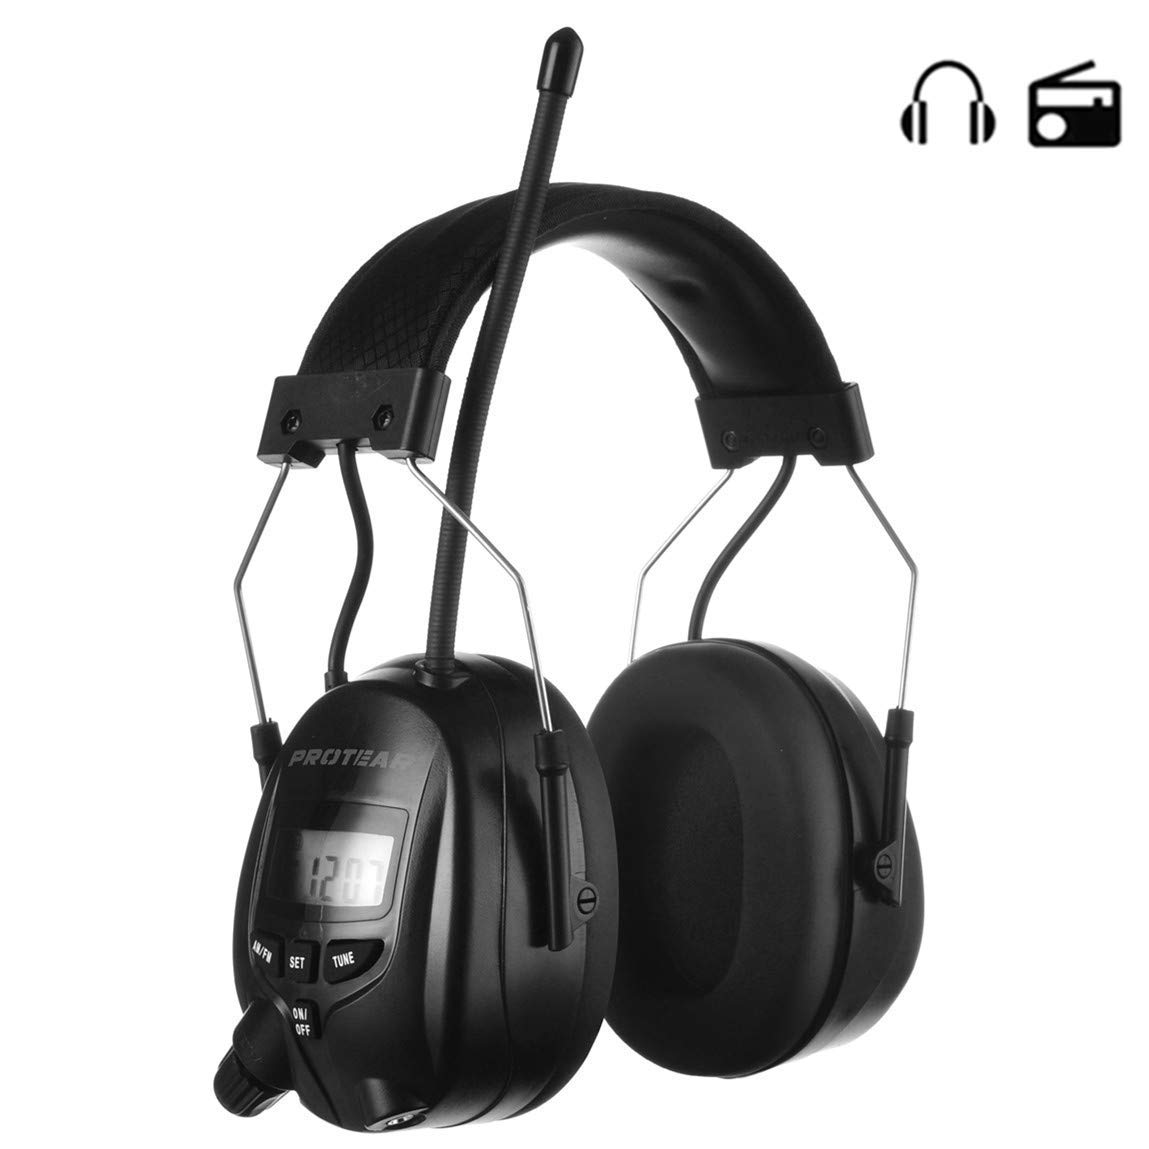 PROTEAR Digital Radio AM FM Headphones, Noise Reduction Safety Earmuffs Compatible with MP3-NRR 25dB, Hearing Protection Ear Protector for Mowing Lawn(Black) by PROTEAR